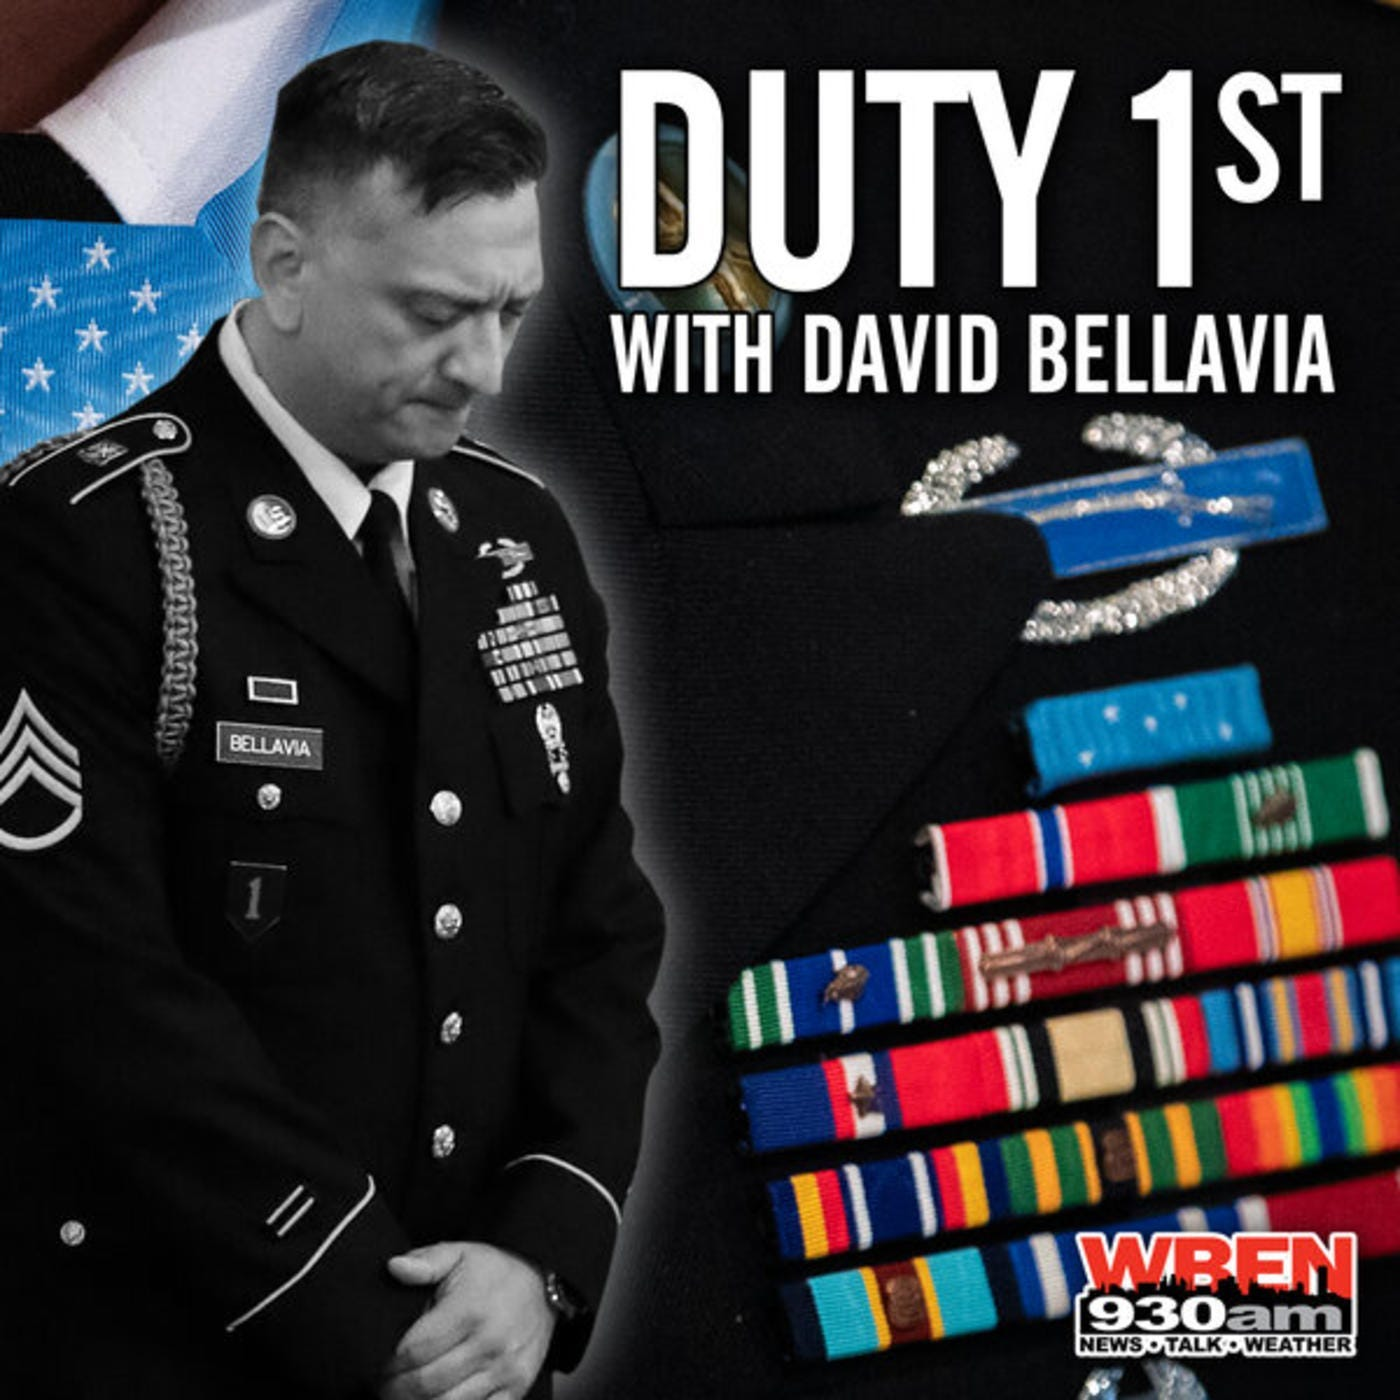 Duty 1st with David Bellavia